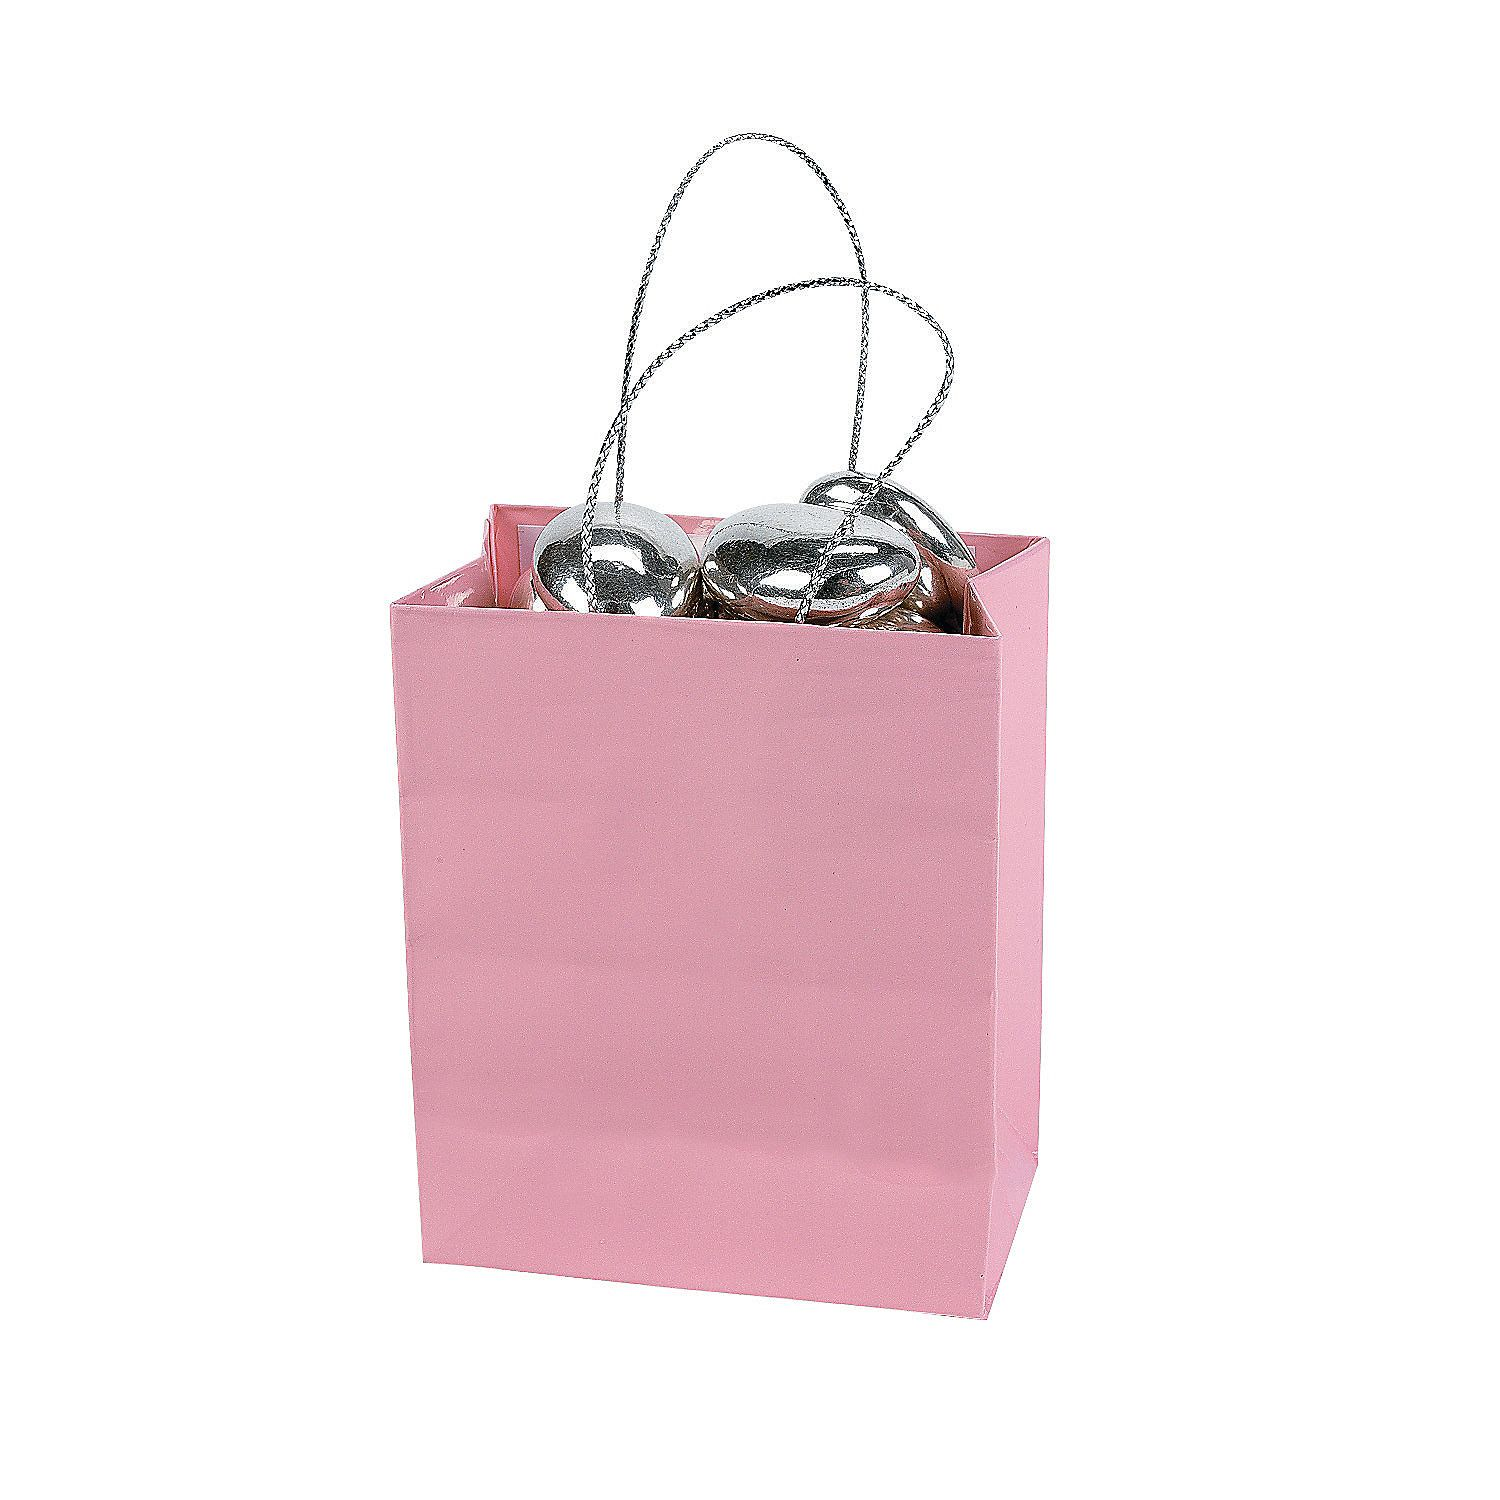 Mini Gift Bags - Pink - OrientalTrading.com $6.50 for 24